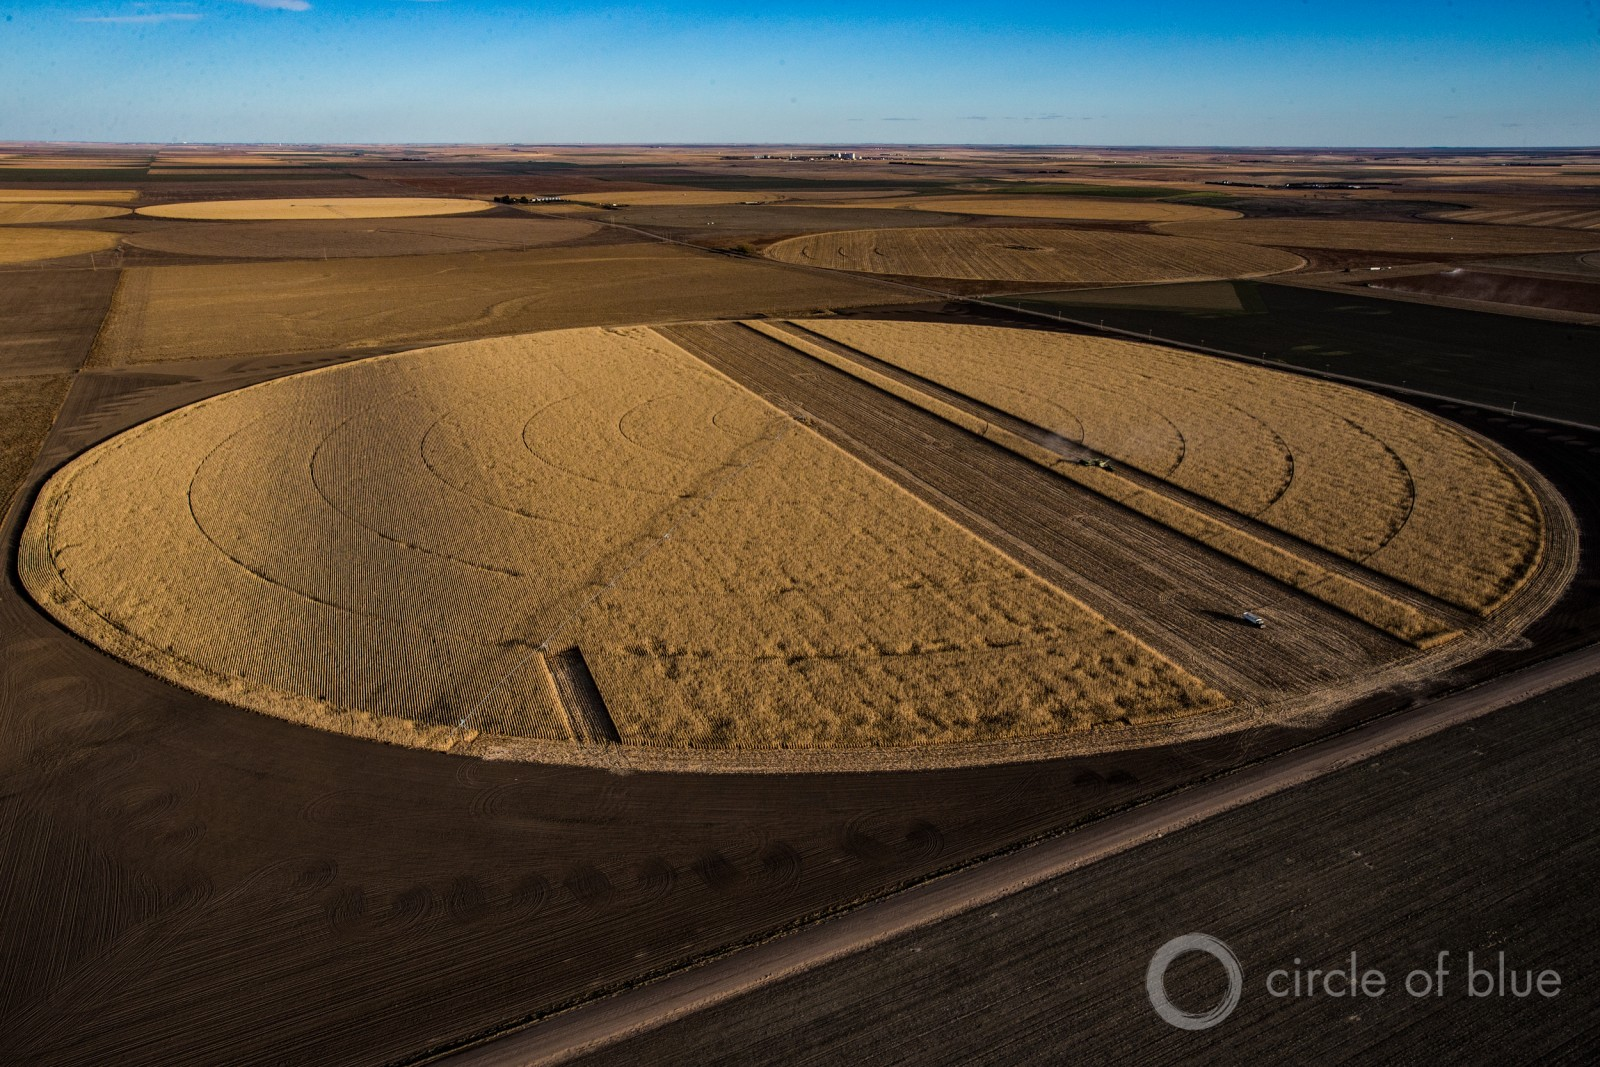 Agriculture consumes most of the world's fresh water. Here, a corn crop is harvested in the U.S. Great Plains. Photo © Brian Lehmann / Circle of Blue